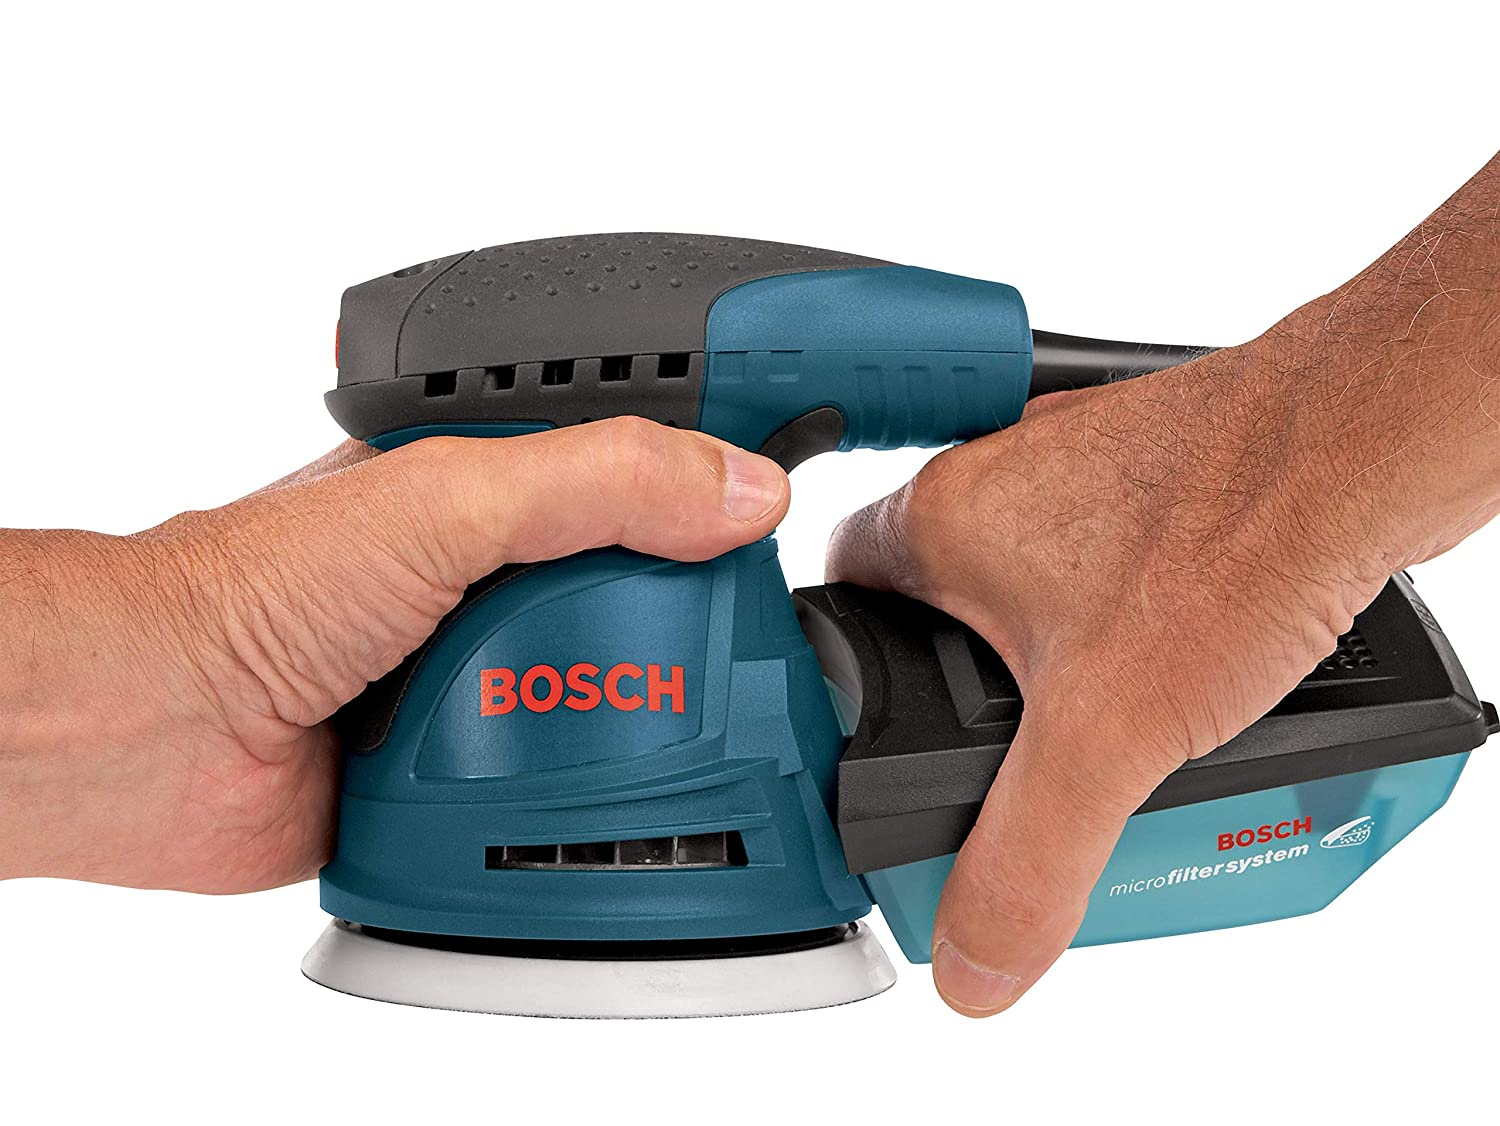 Bosch ROS20VSC featured image 8